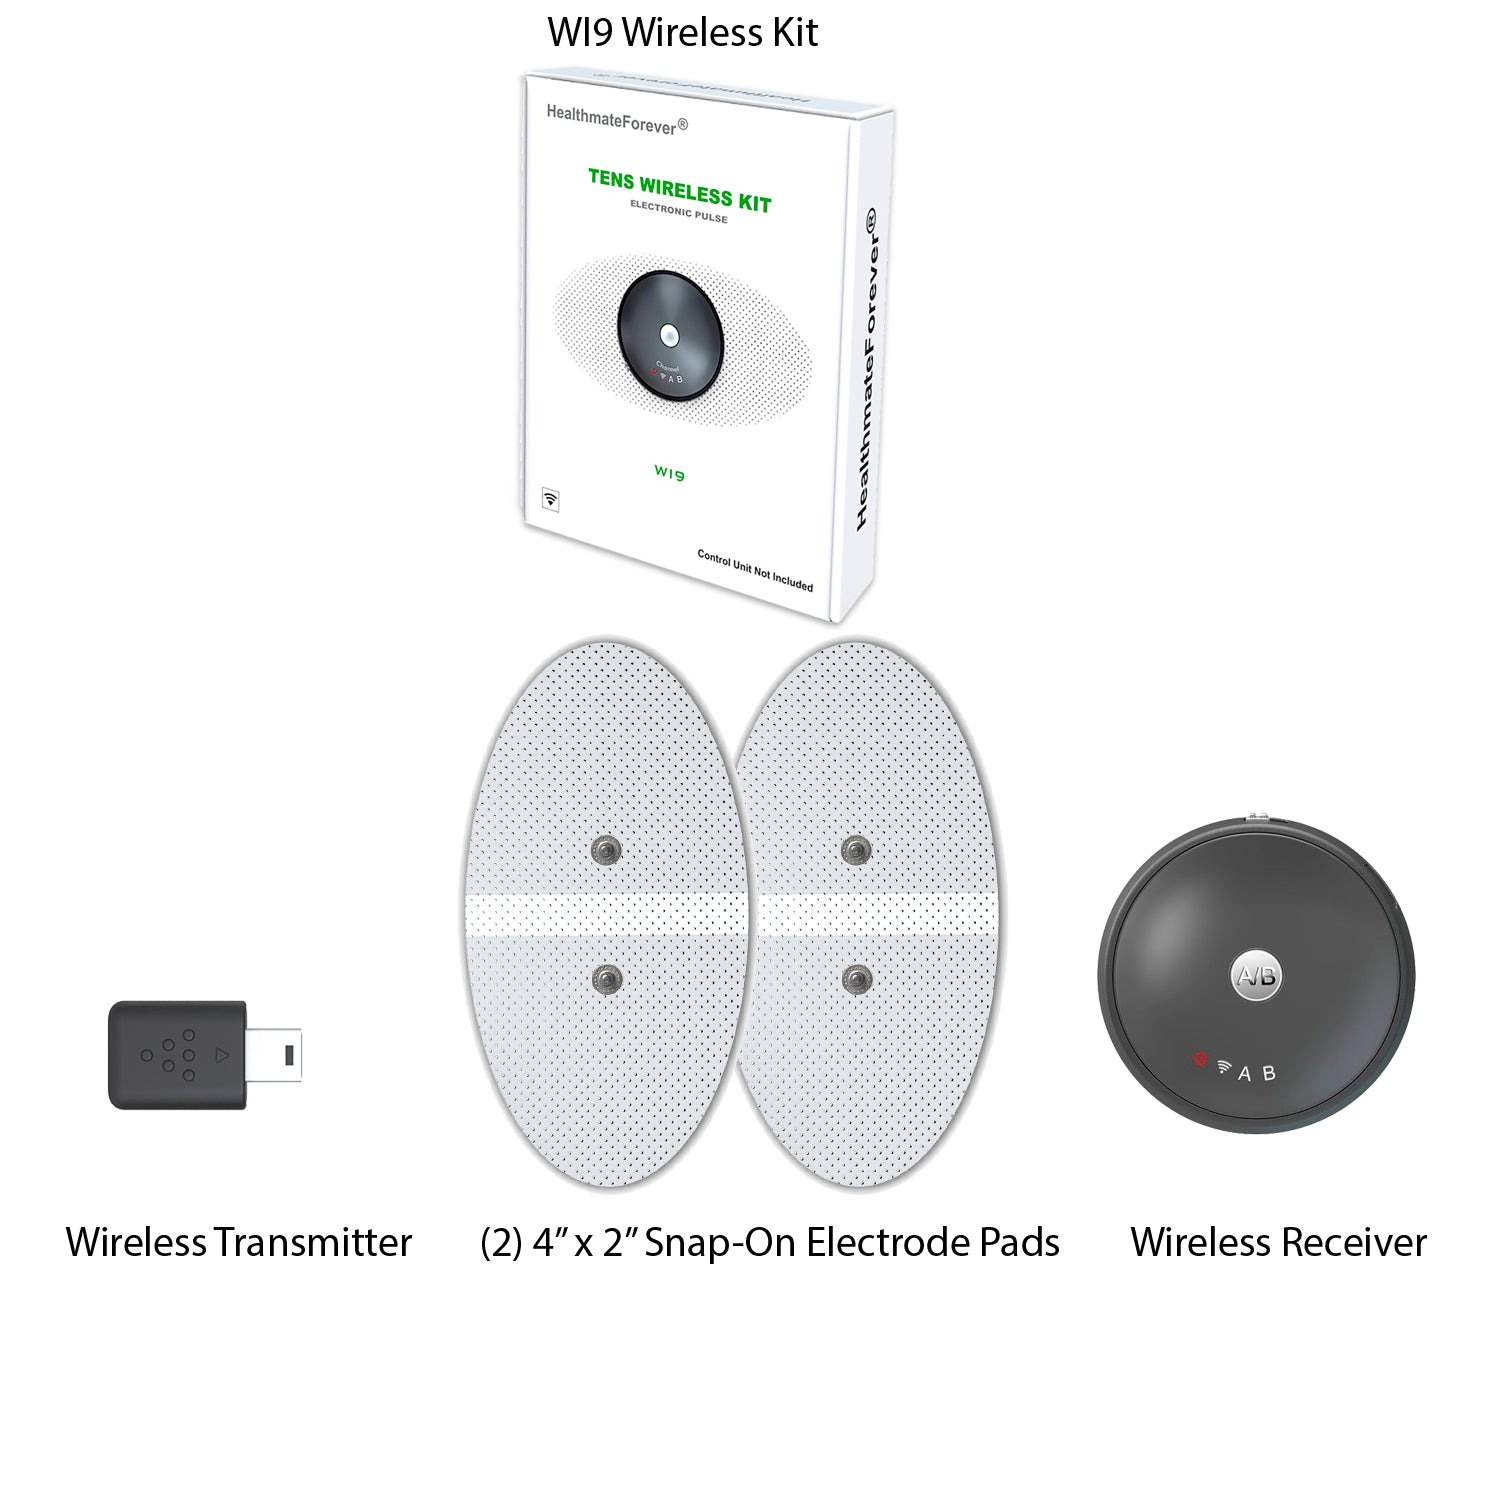 2 Wi9 Wireless Kits with 4 Electrode Pads - HealthmateForever